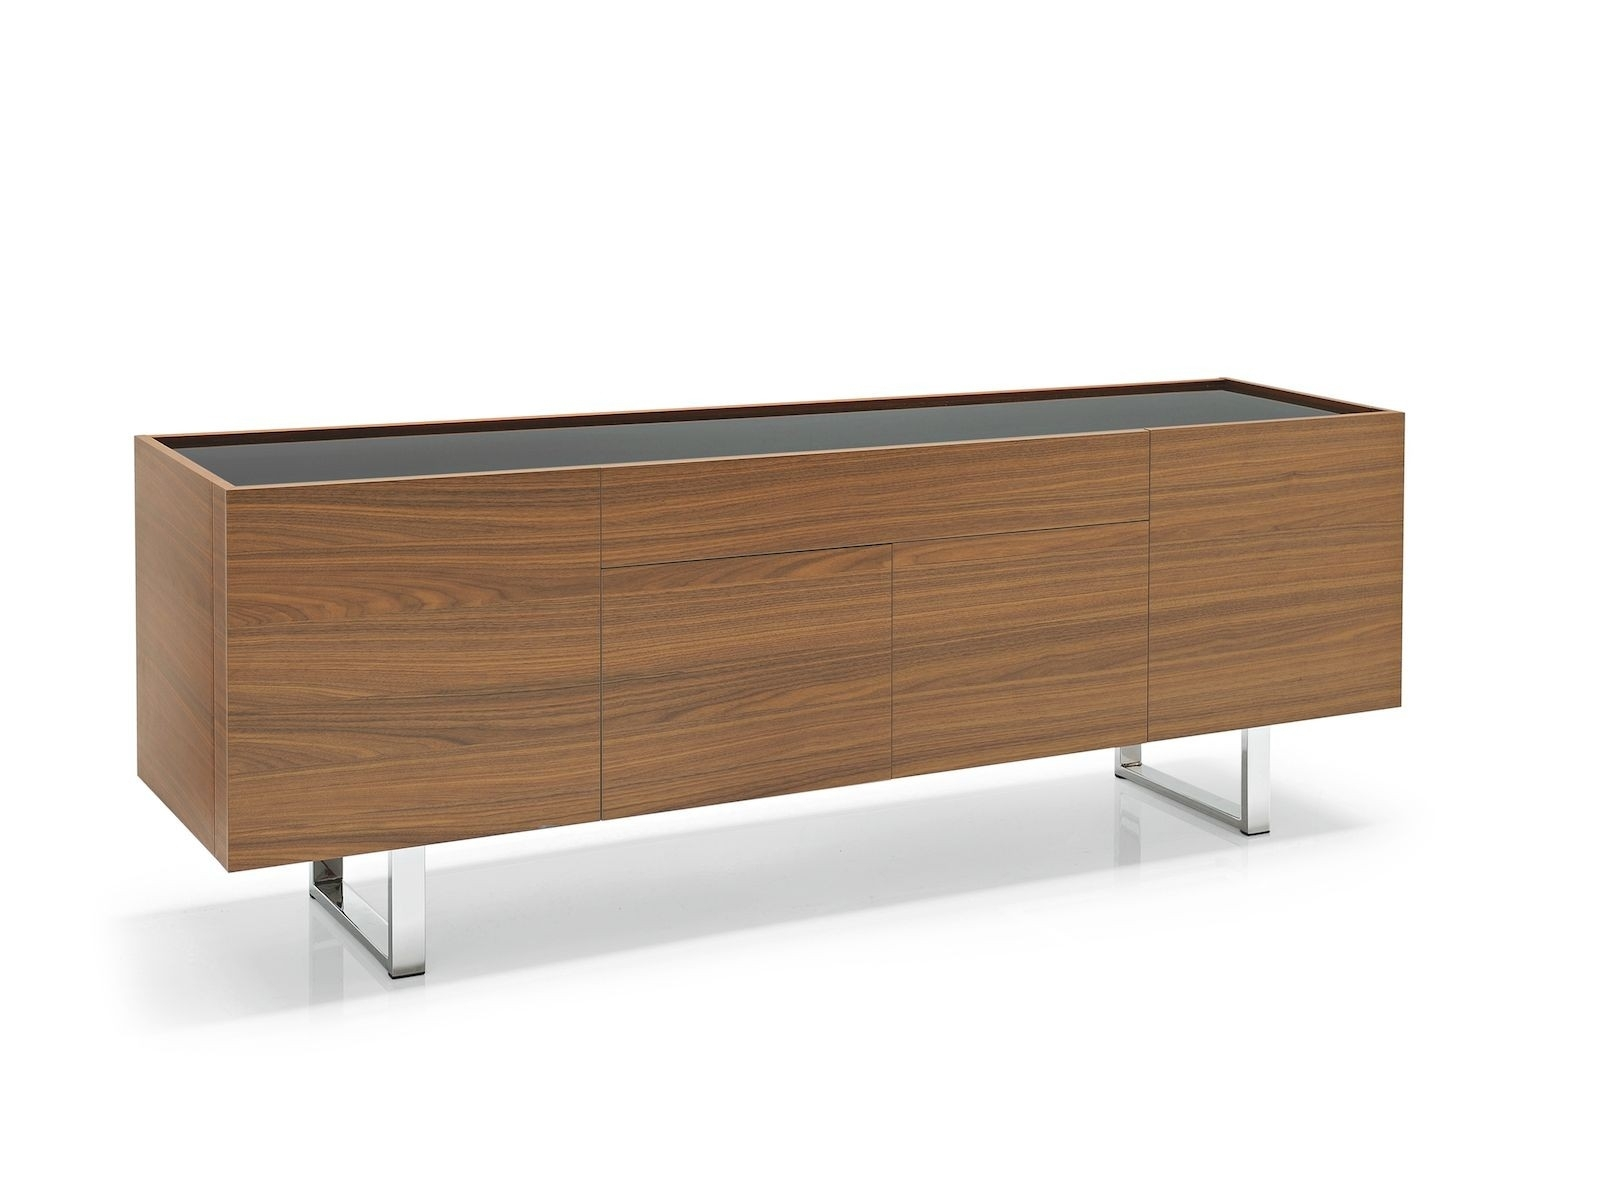 Calligaris Horizon 4 Door With Central Drawer Sideboard – Frank Mc Gowan with 4-Door 4-Drawer Metal Inserts Sideboards (Image 11 of 30)